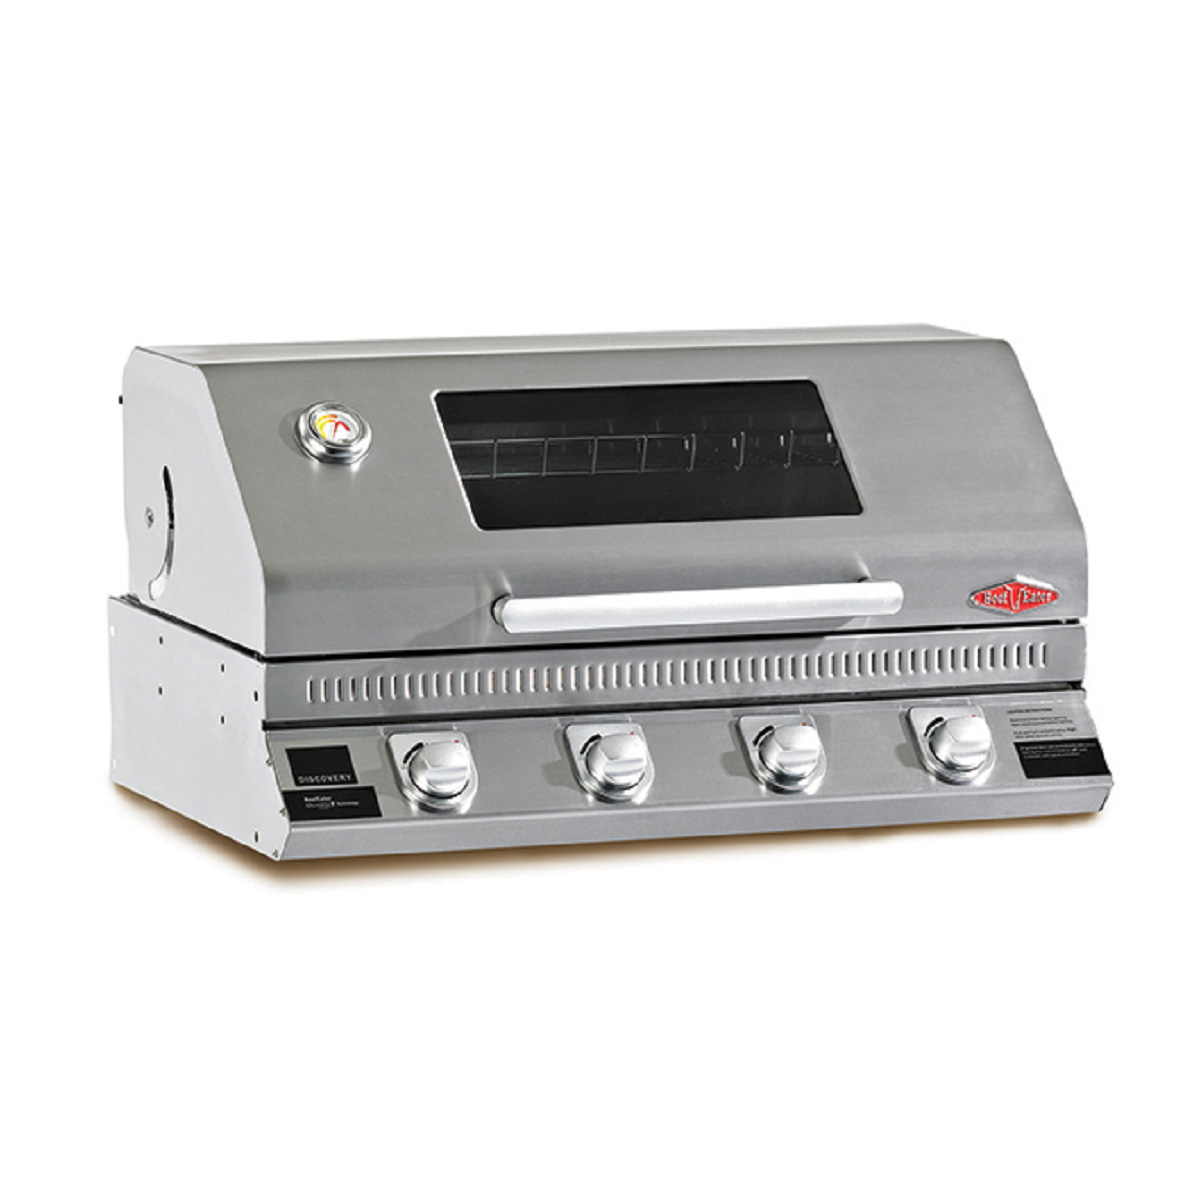 Beefeater 4 Burner Discovery 1100D Built-in BBQ 16340